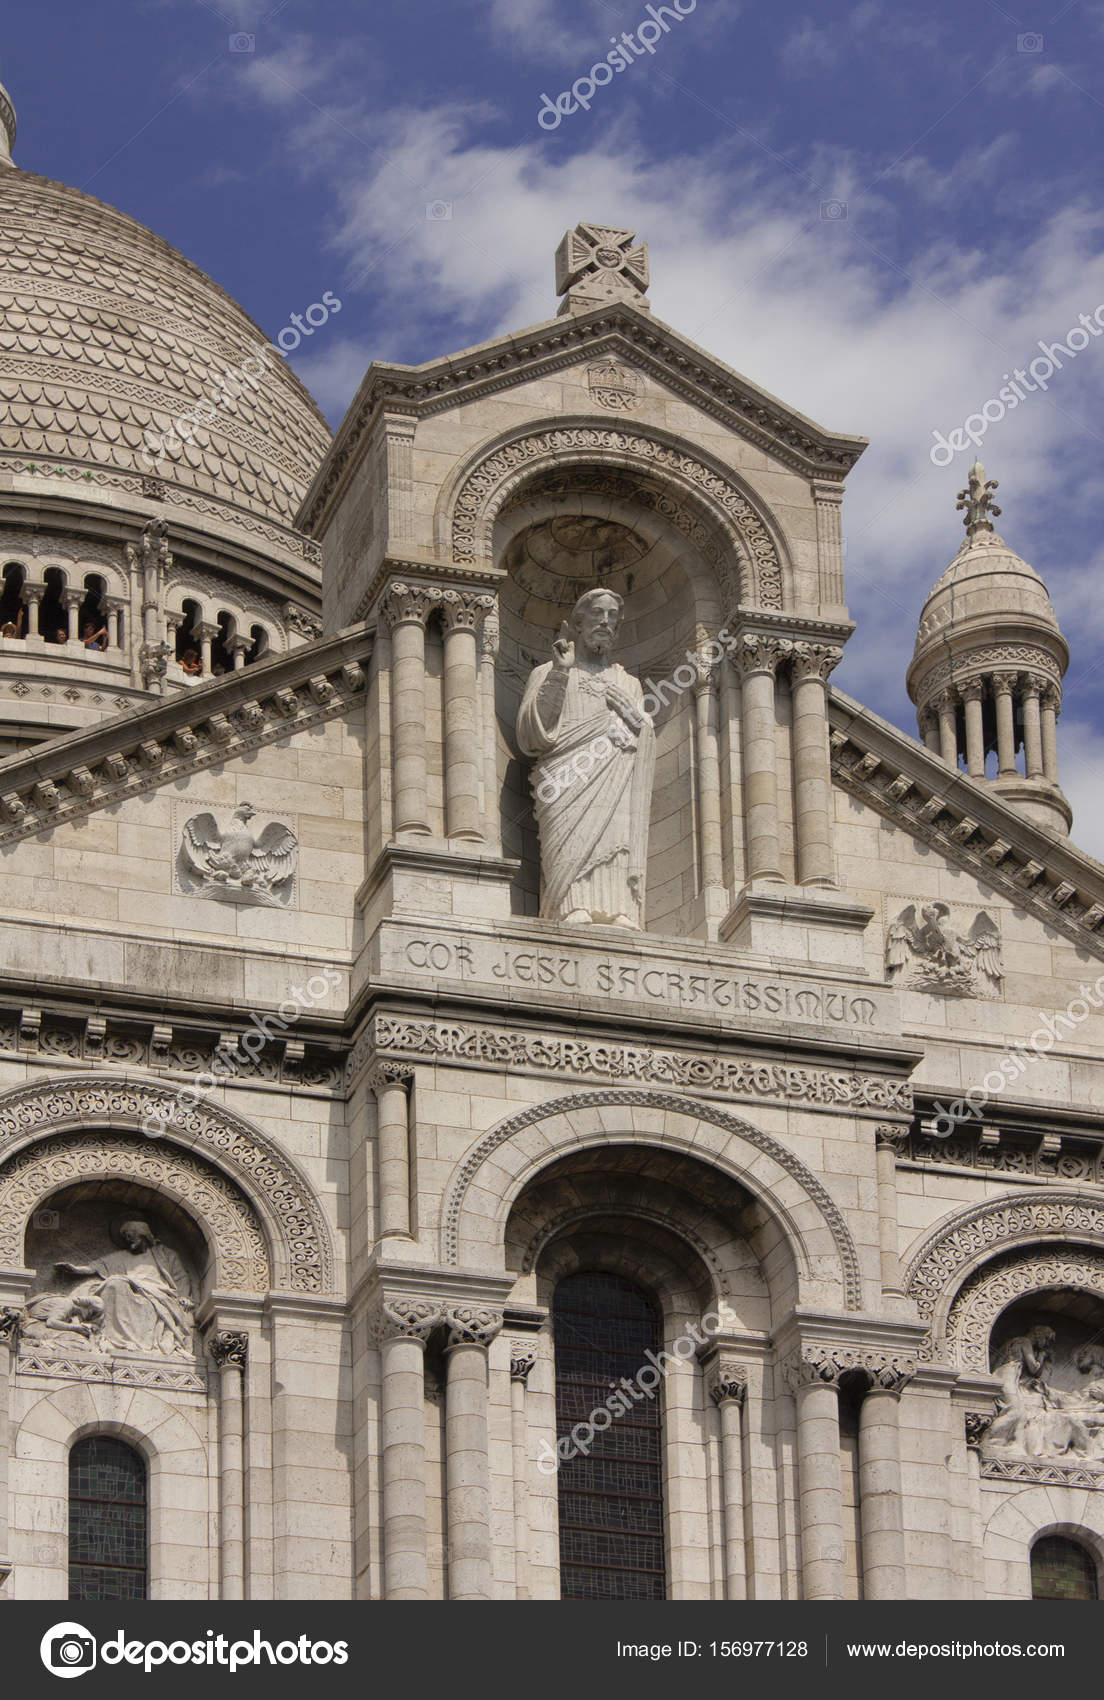 The sculpture of the Sacr-Coeur Cathedral